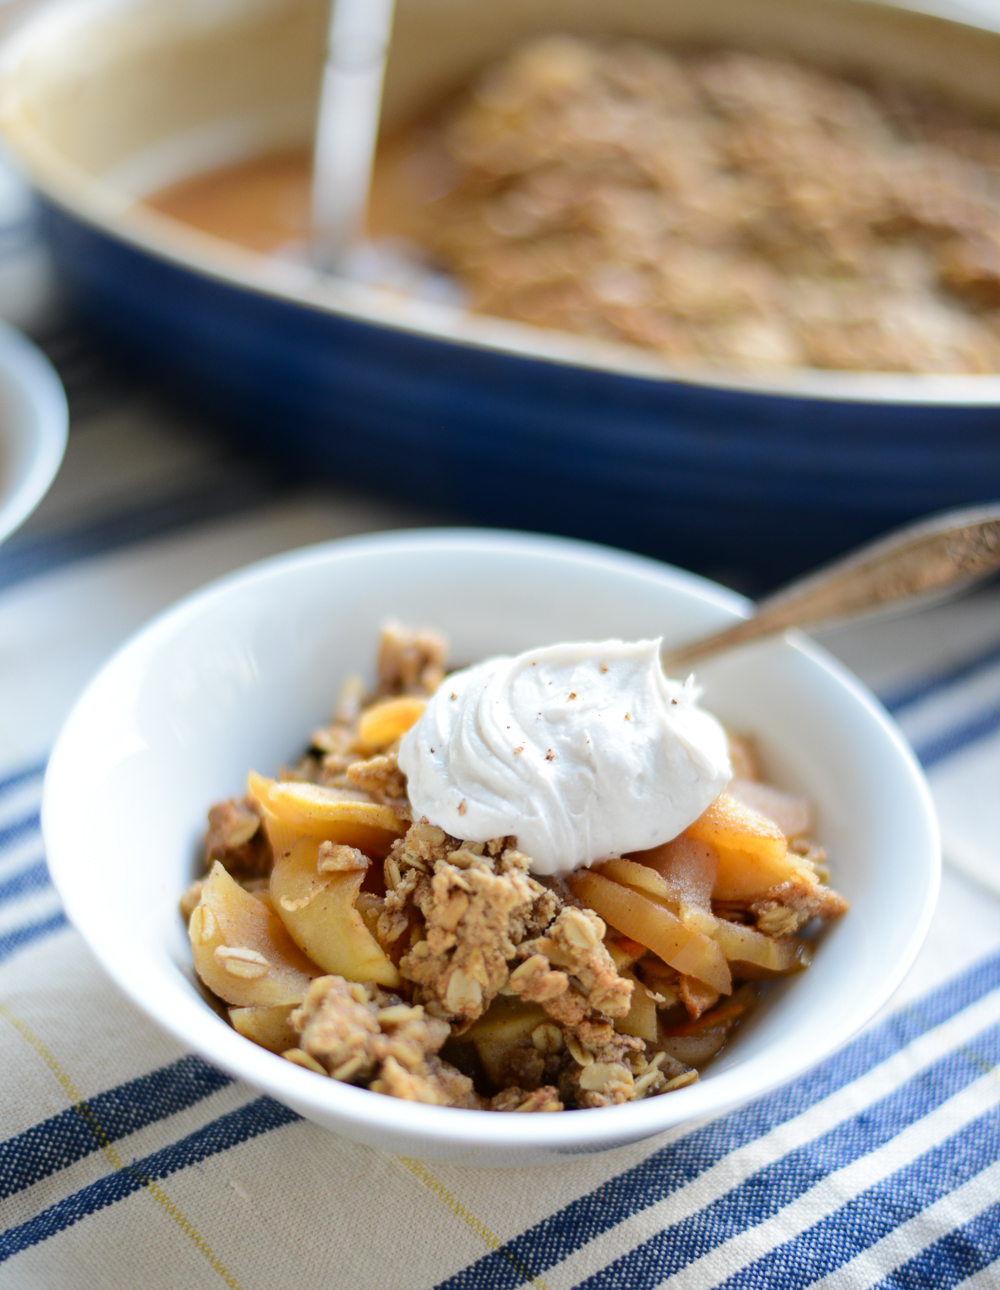 The perfect dessert to serve a crowd, Healthier Old-Fashioned Apple Crisp is brimming with lightly sweet cinnamon-spiked apples and topped with a crunchy, satisfying oat topping. It's also naturally gluten- and dairy-free, so you can enjoy this comforting dessert more often! realfoodwholelife.com